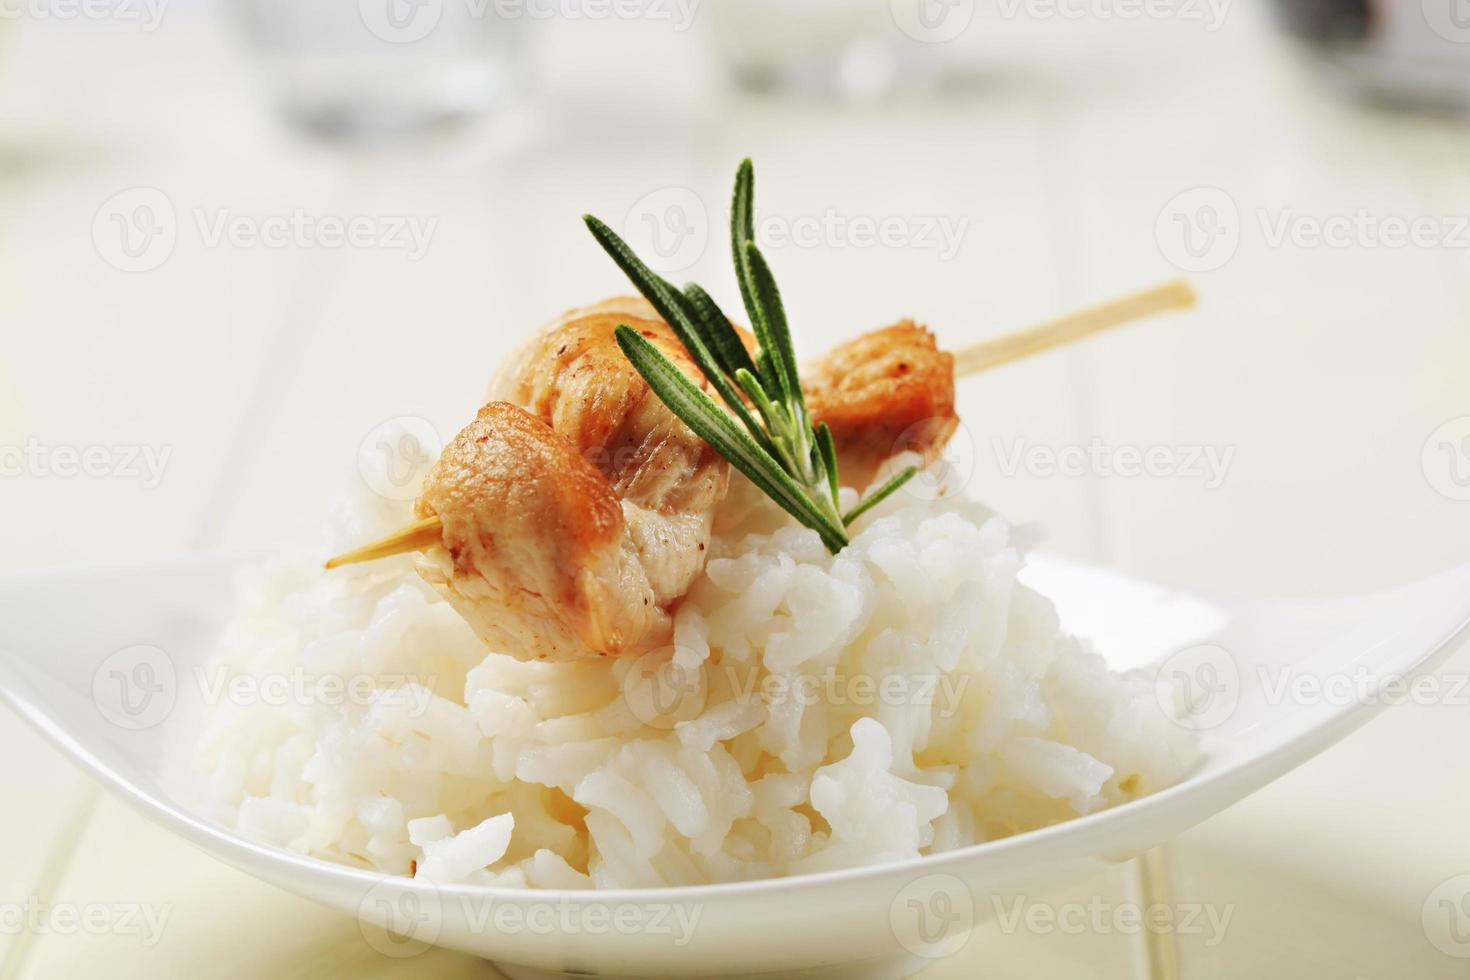 Chicken skewer and rice photo